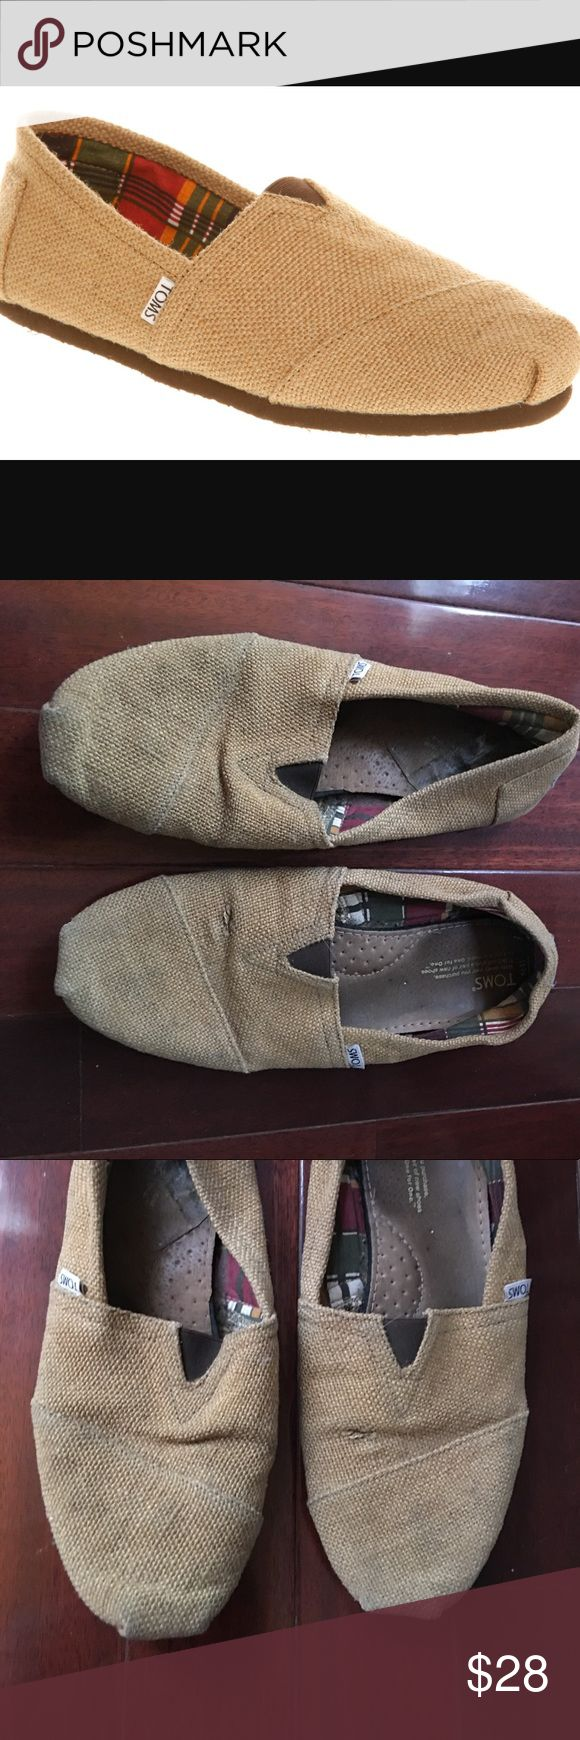 Burlap TOMS men's size 11 Burlap TOMS men's size 11. Used condition good, wear normal to bottoms and soles. Scuffs to back lower under tom logo.first picture to give better idea of look of shoes. Offers welcome. Toms Shoes Loafers & Slip-Ons